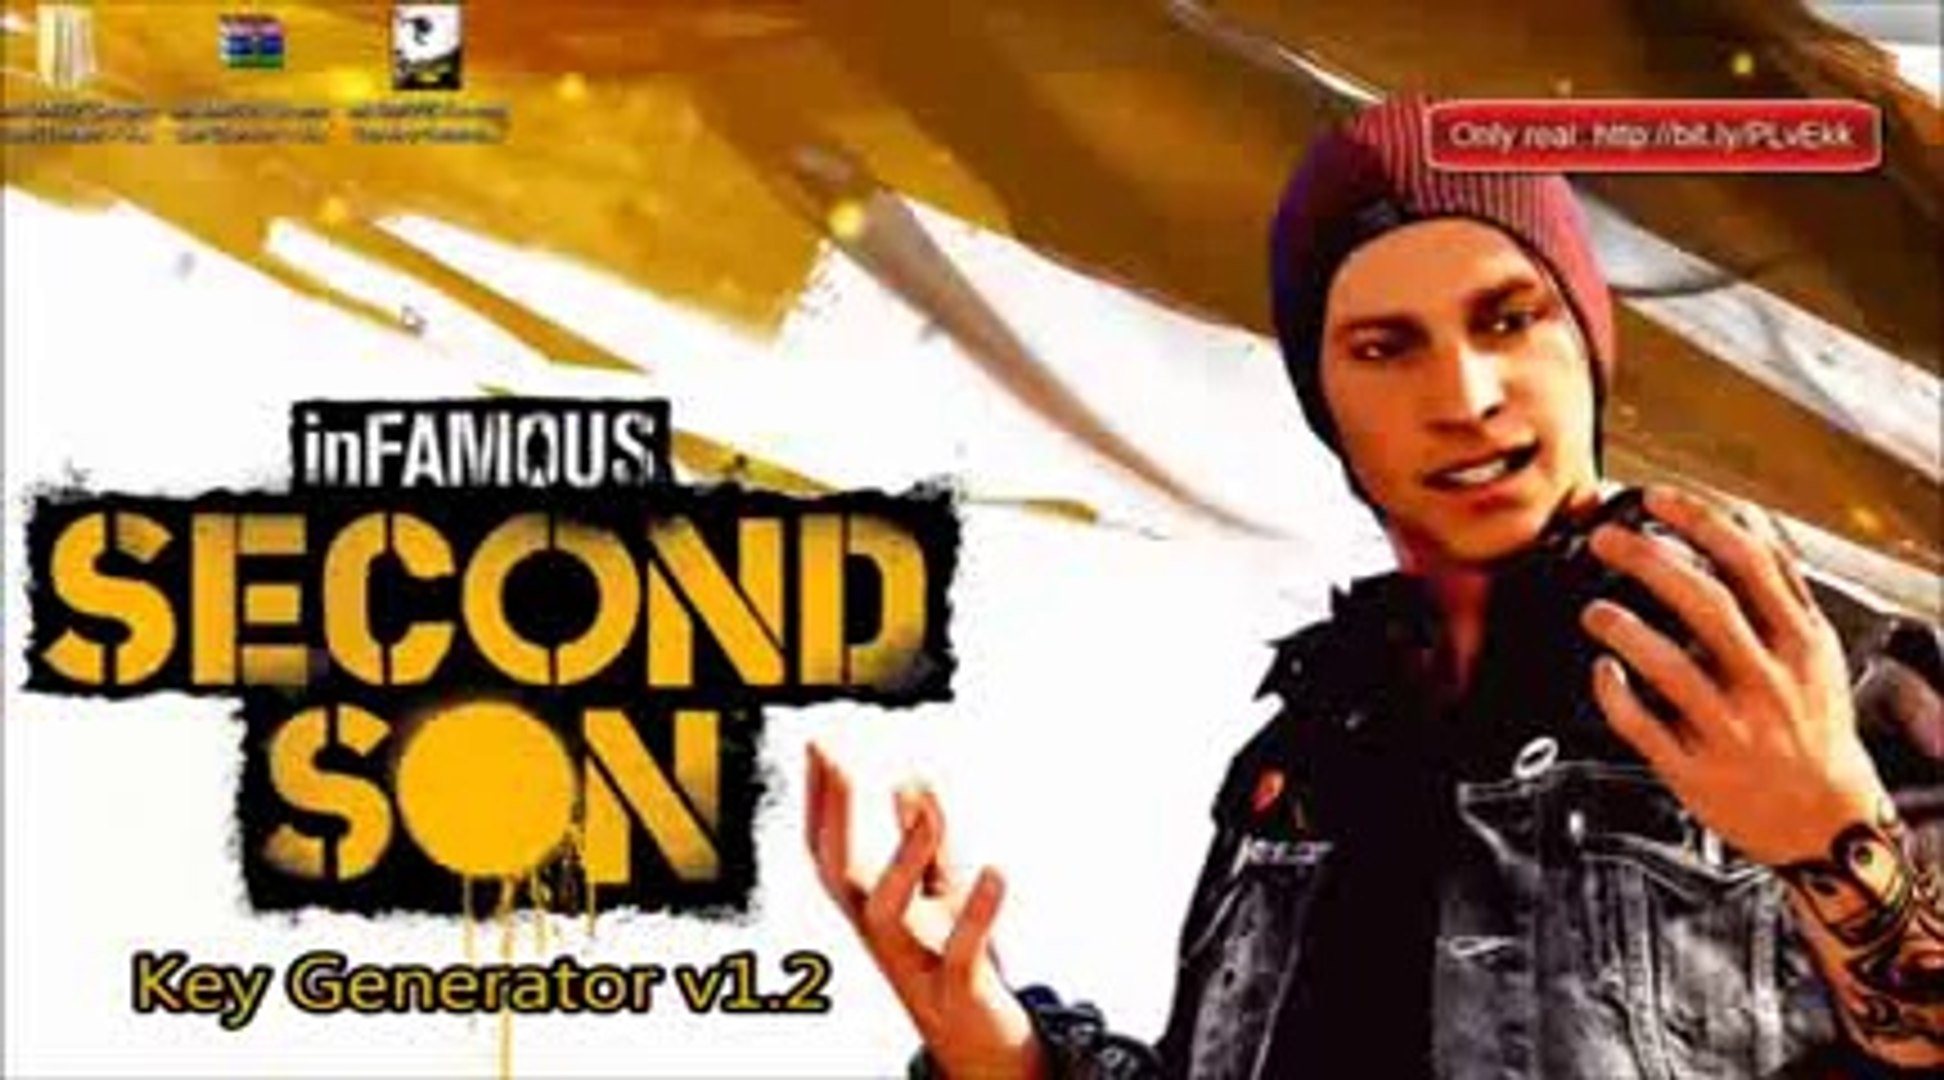 descargar infamous second son pc espaol utorrent